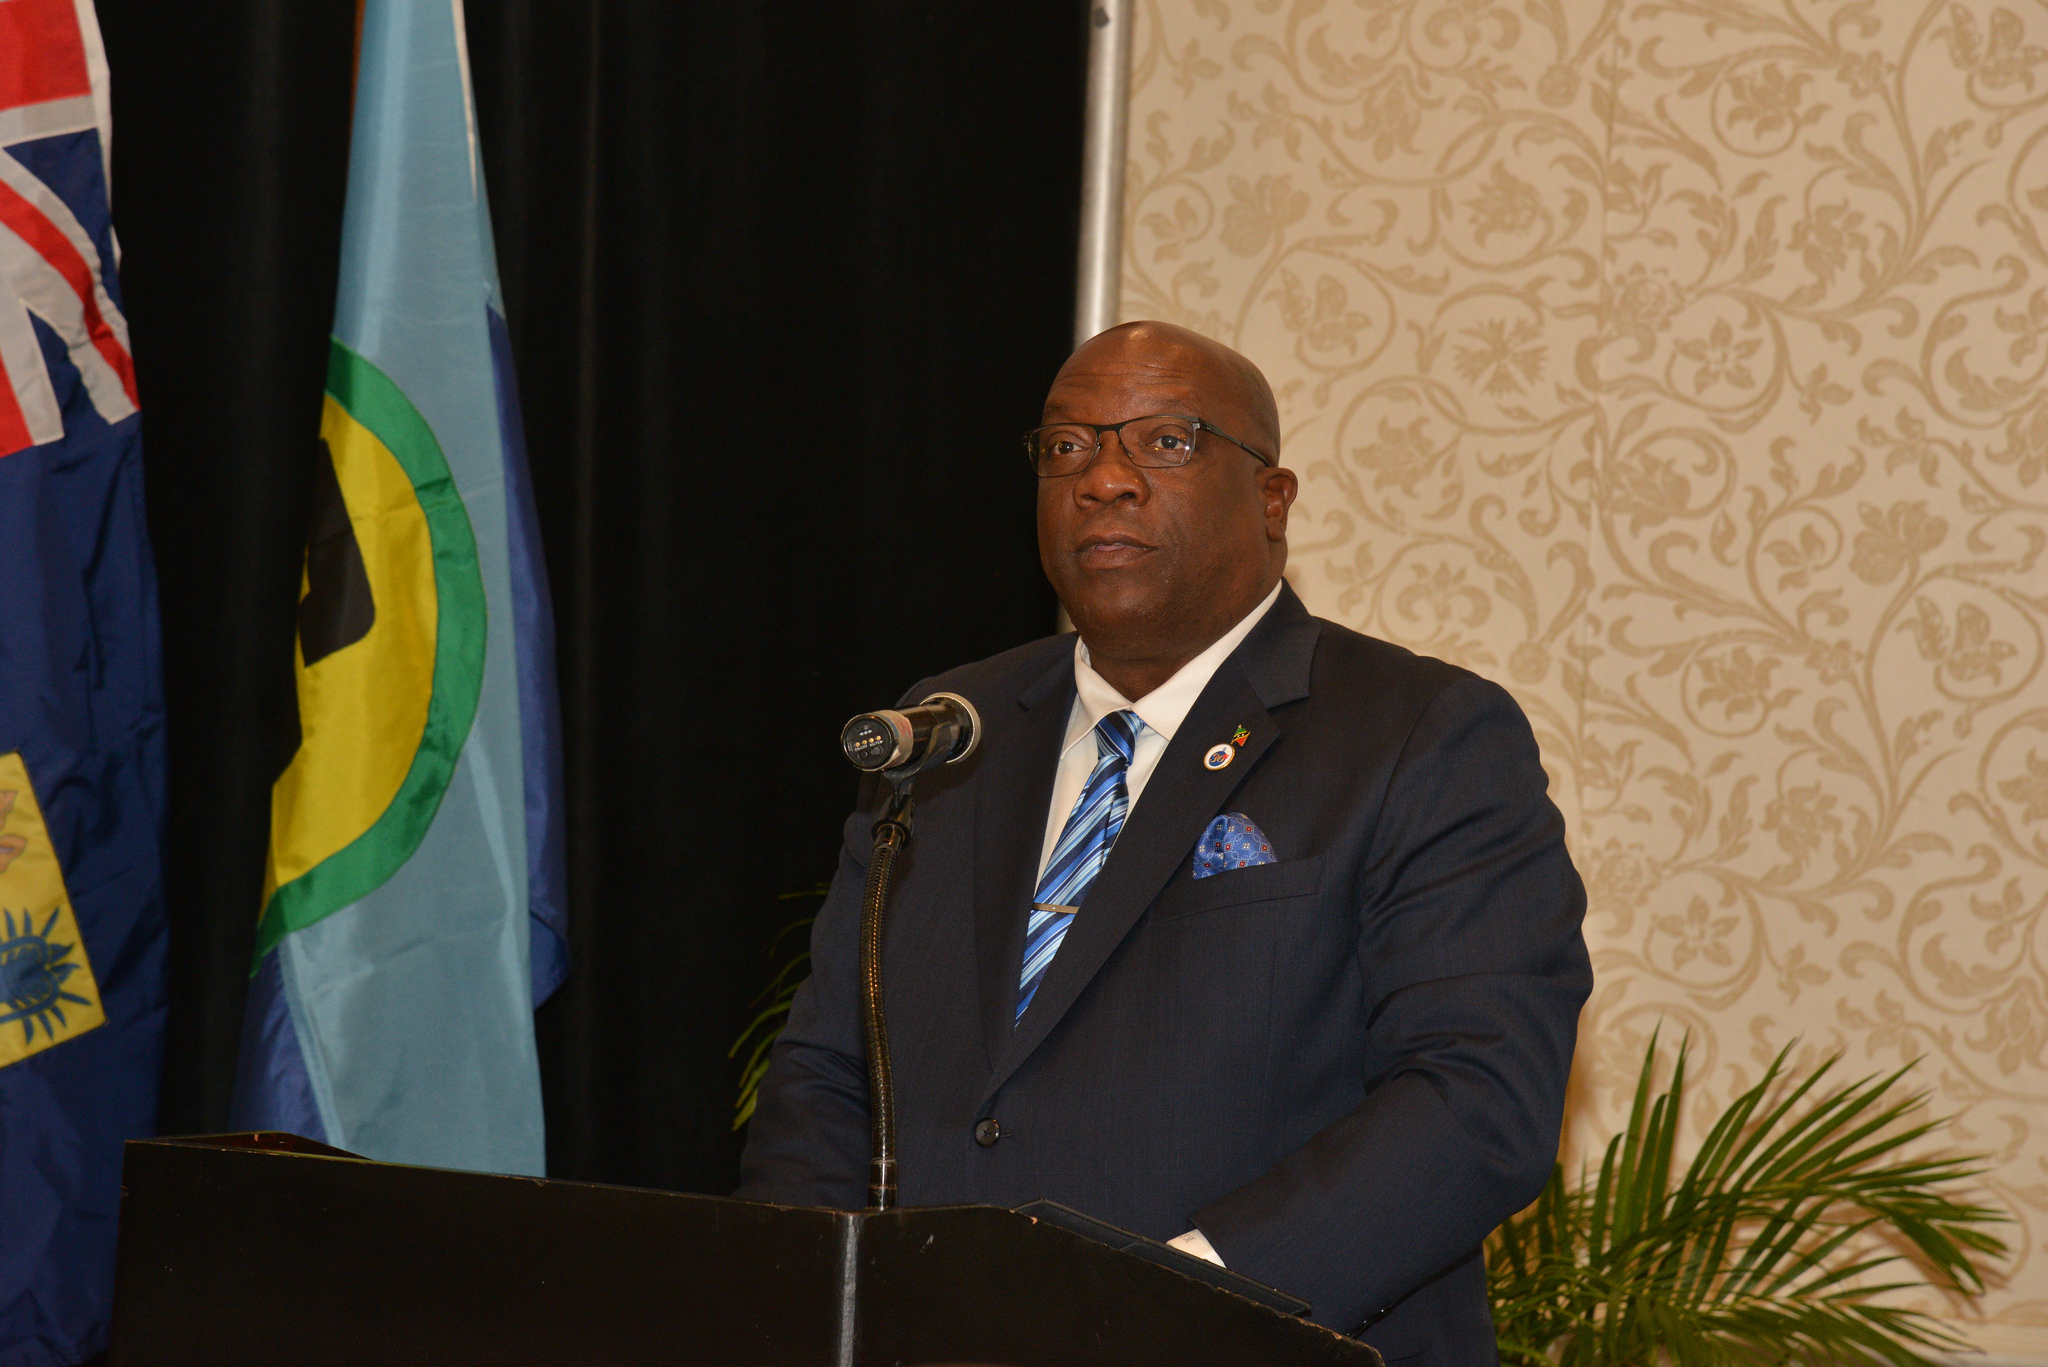 Dr. The Hon. Timothy Harris, Prime Minister of St. Kitts and Nevis and Chairman of the Cariibbean Community